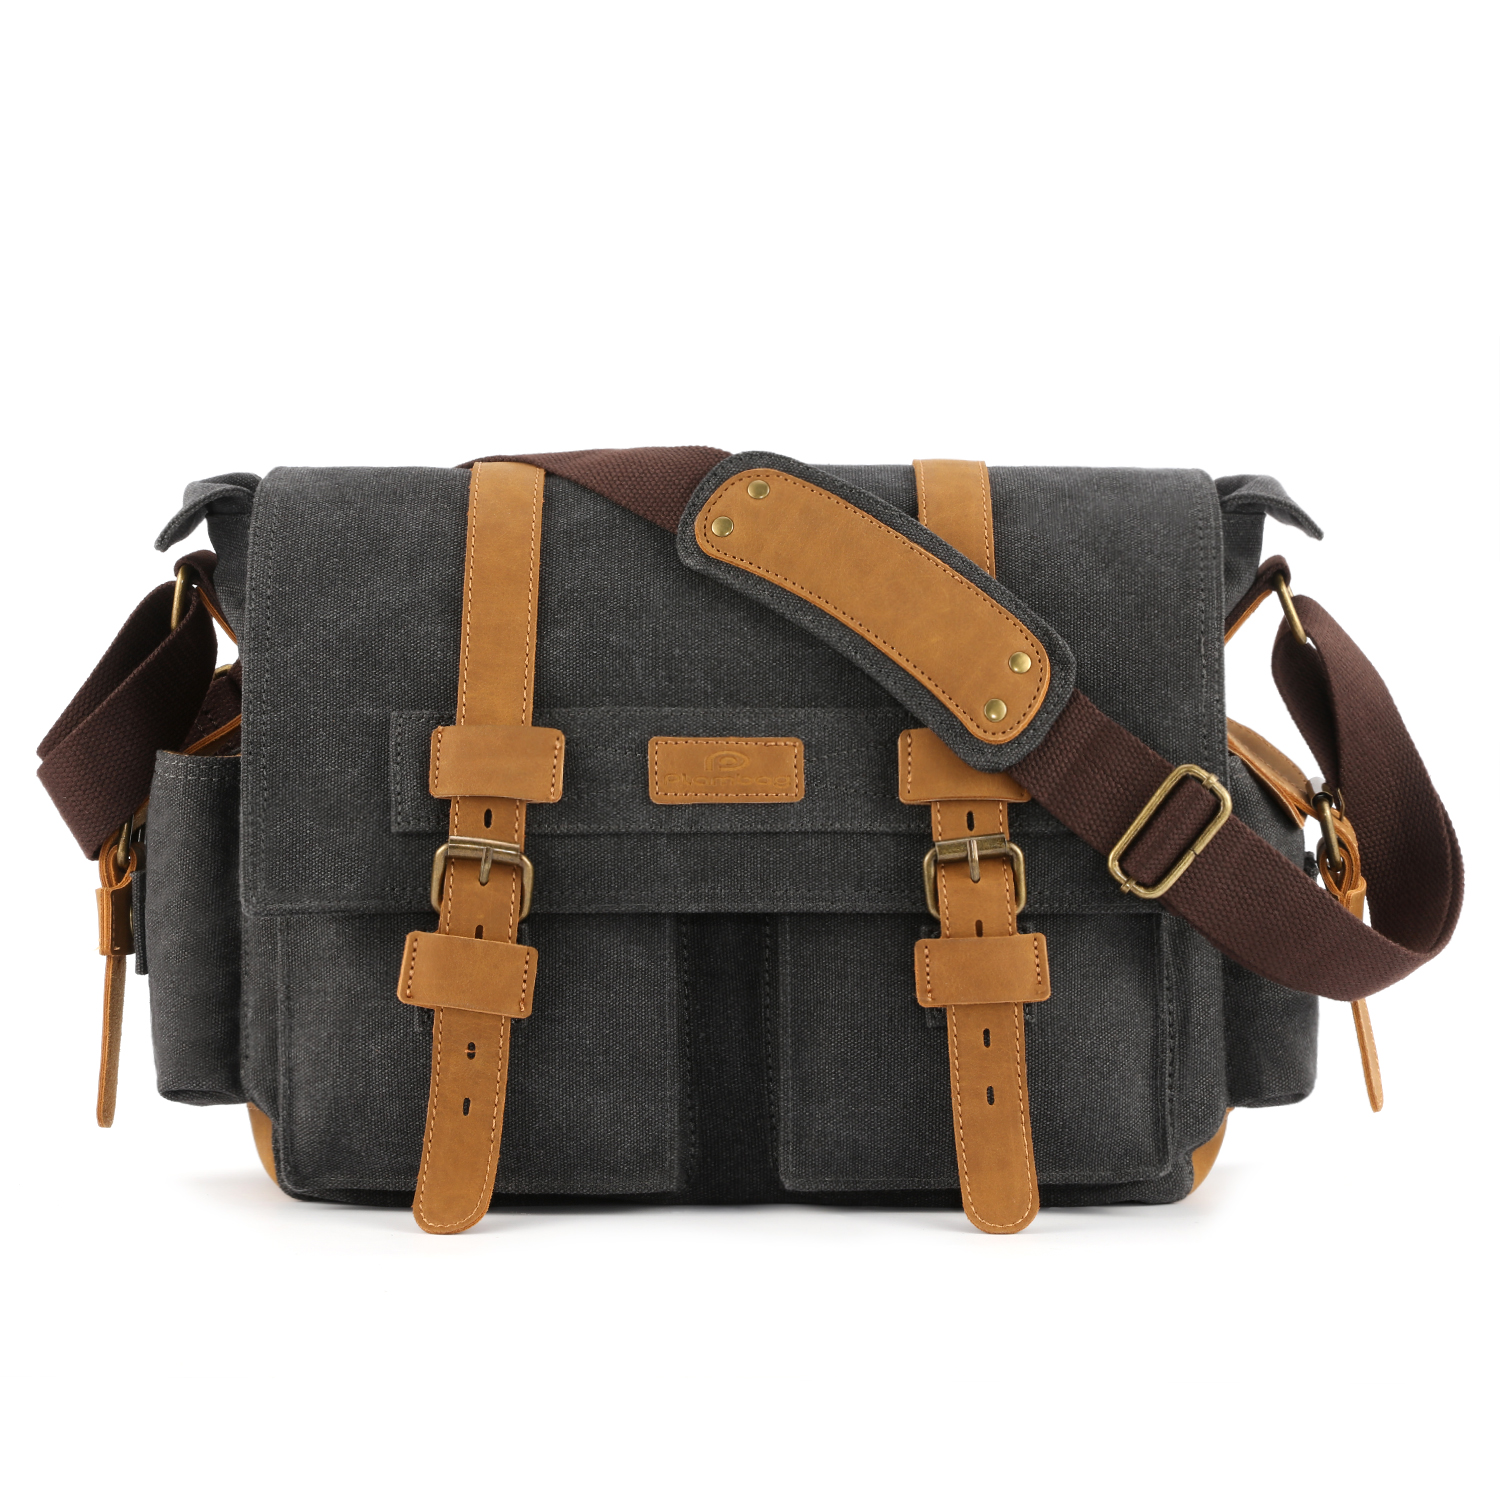 Plambag DSLR Camera Shoulder Bag Canvas Faux Leather Messenger Bag